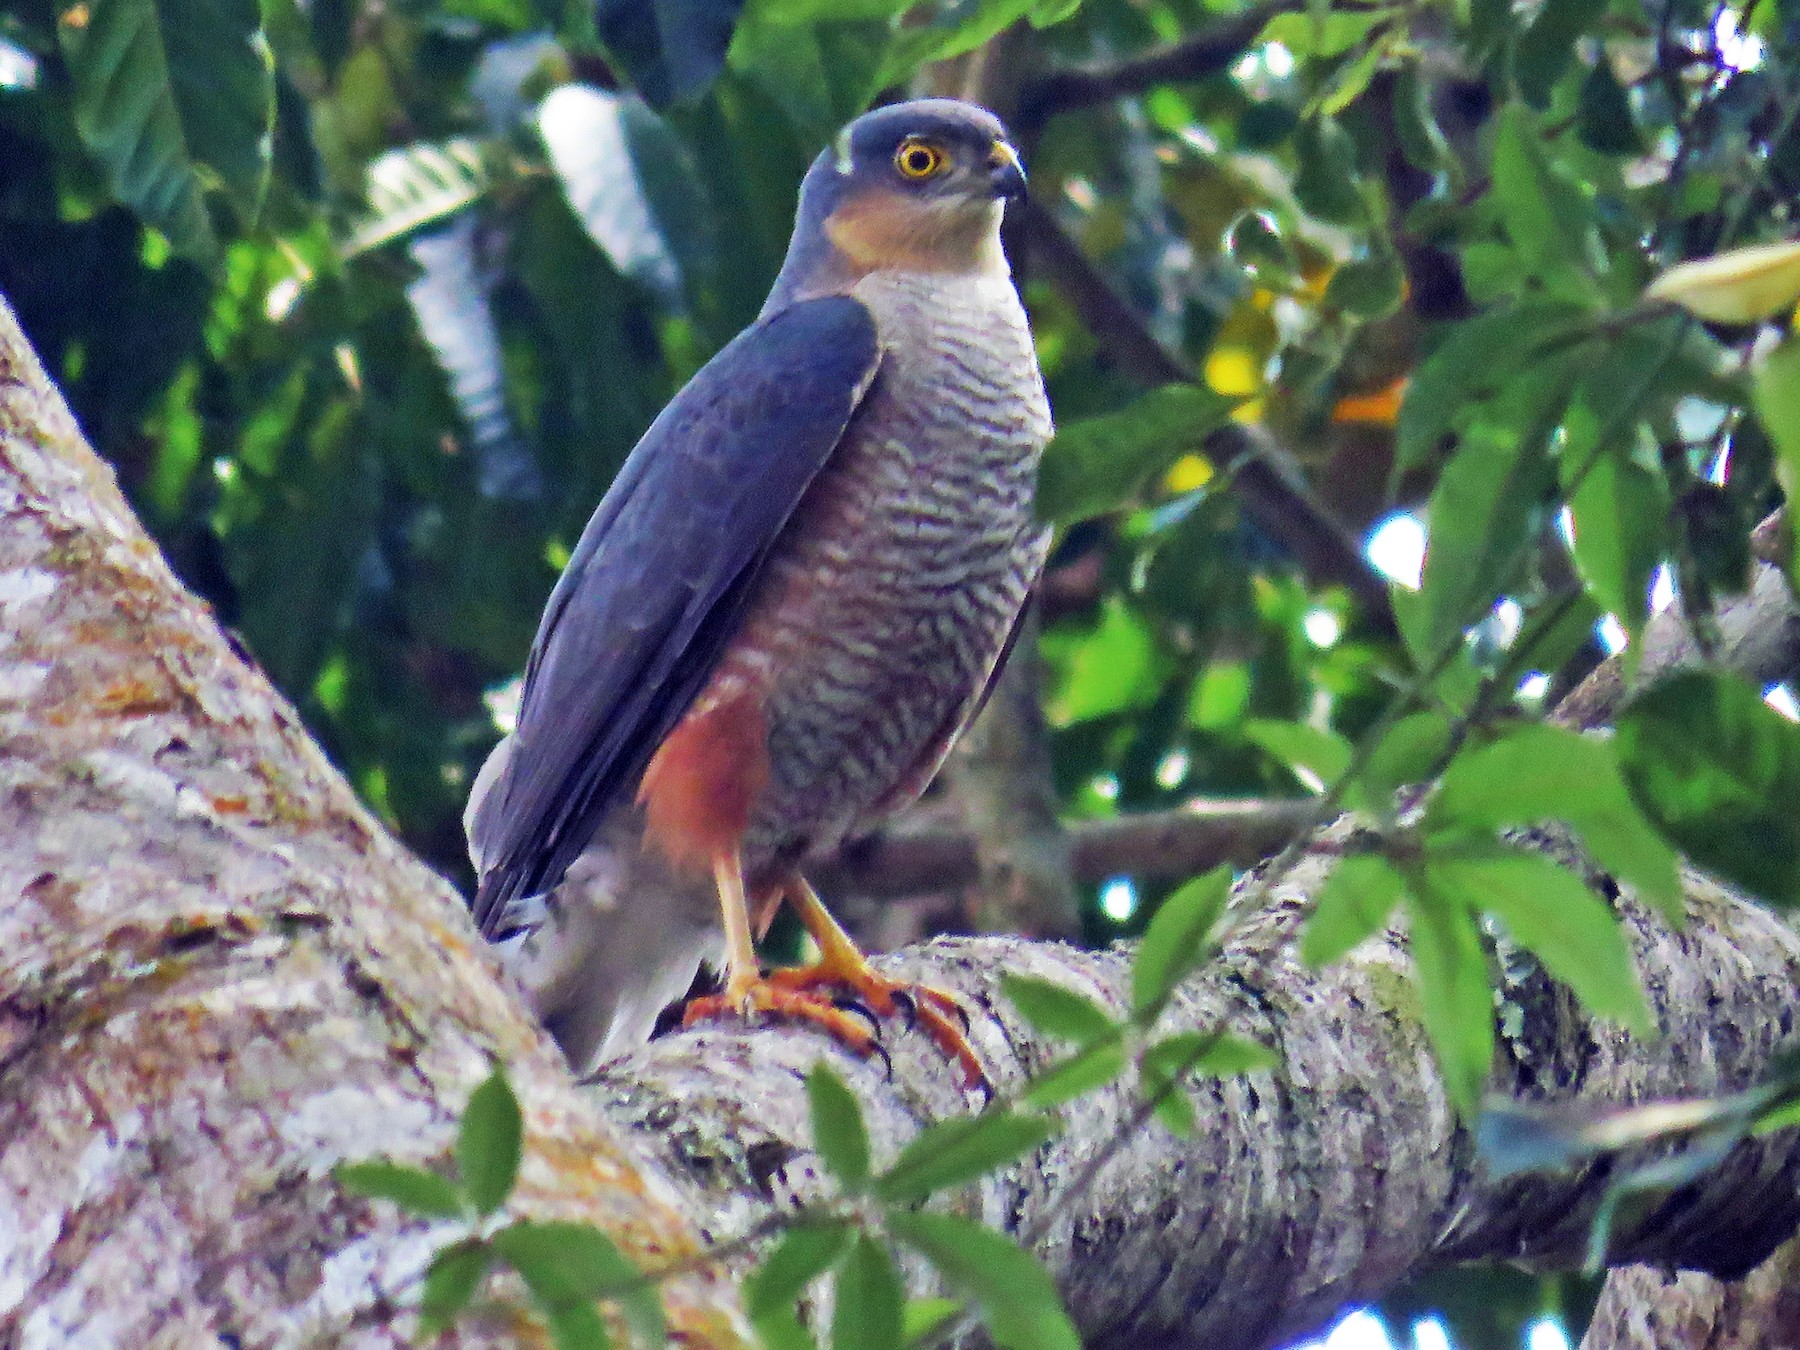 Sharp-shinned Hawk - Alex Mesquita